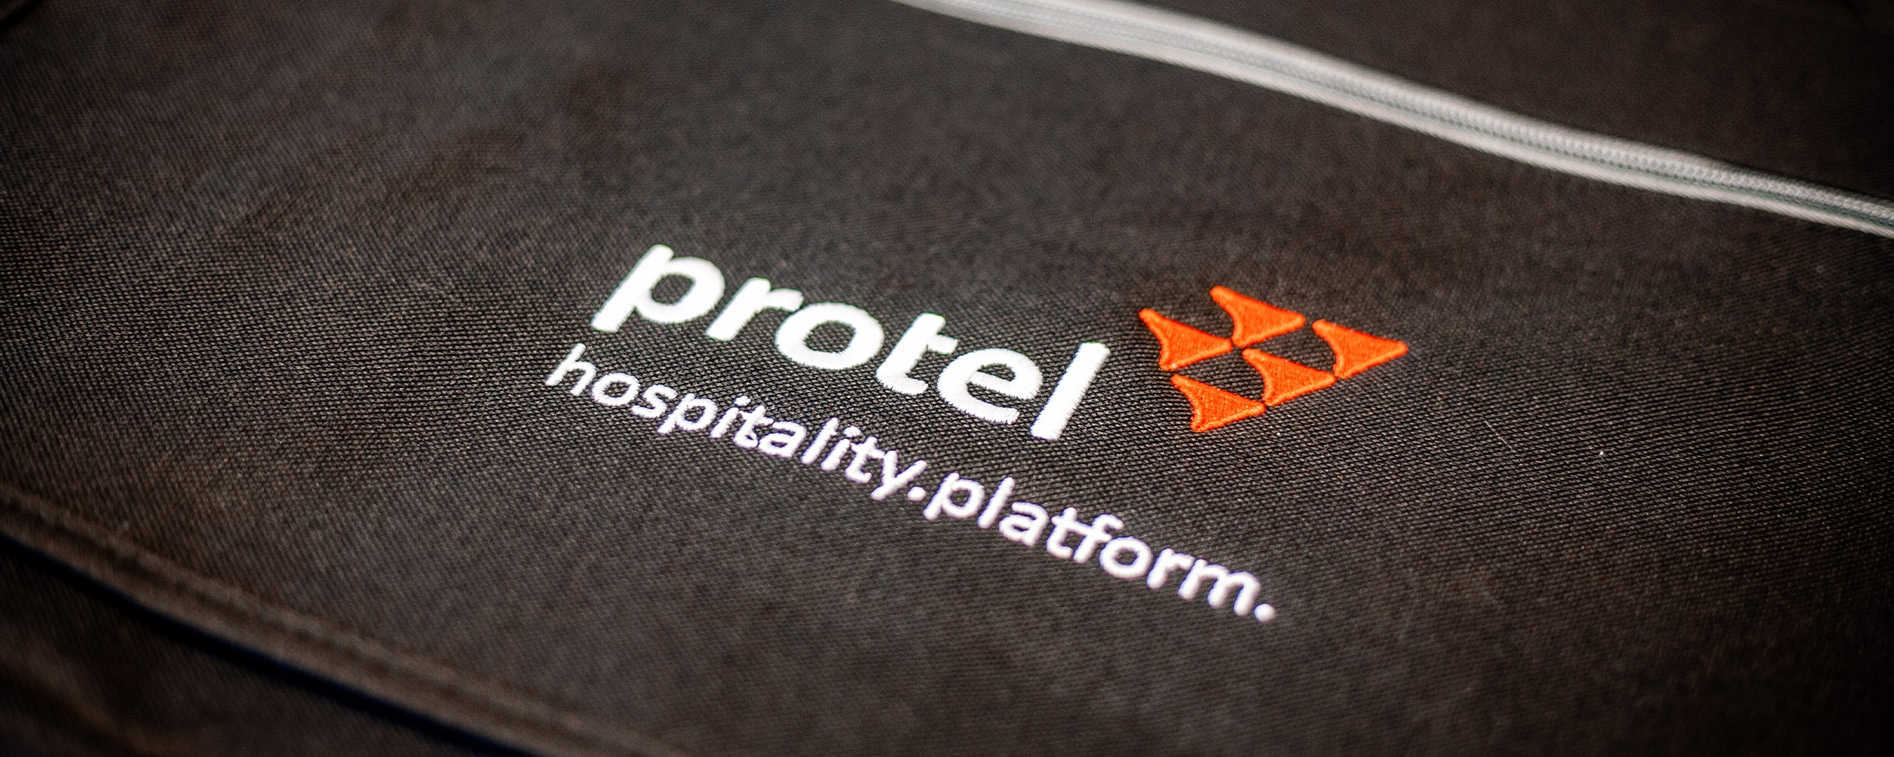 Partnership Protel hotelsoftware & Acom